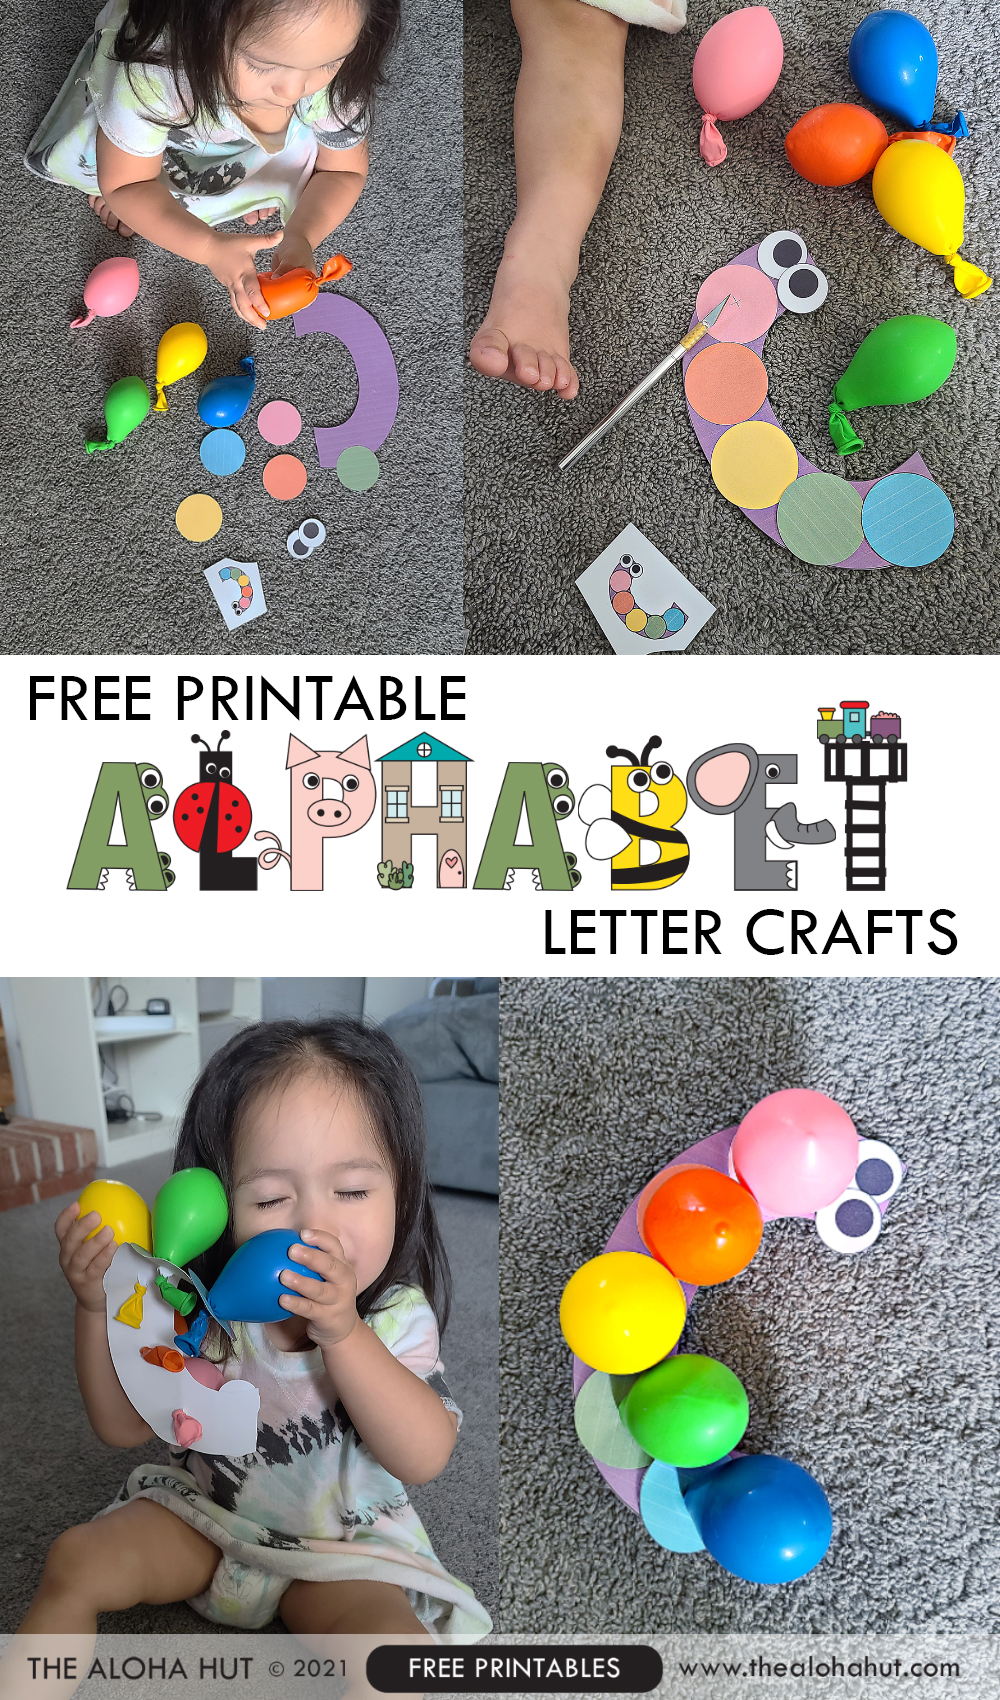 Alphabet Letter Crafts - Letter C - free printable 4 by the Aloha Hut